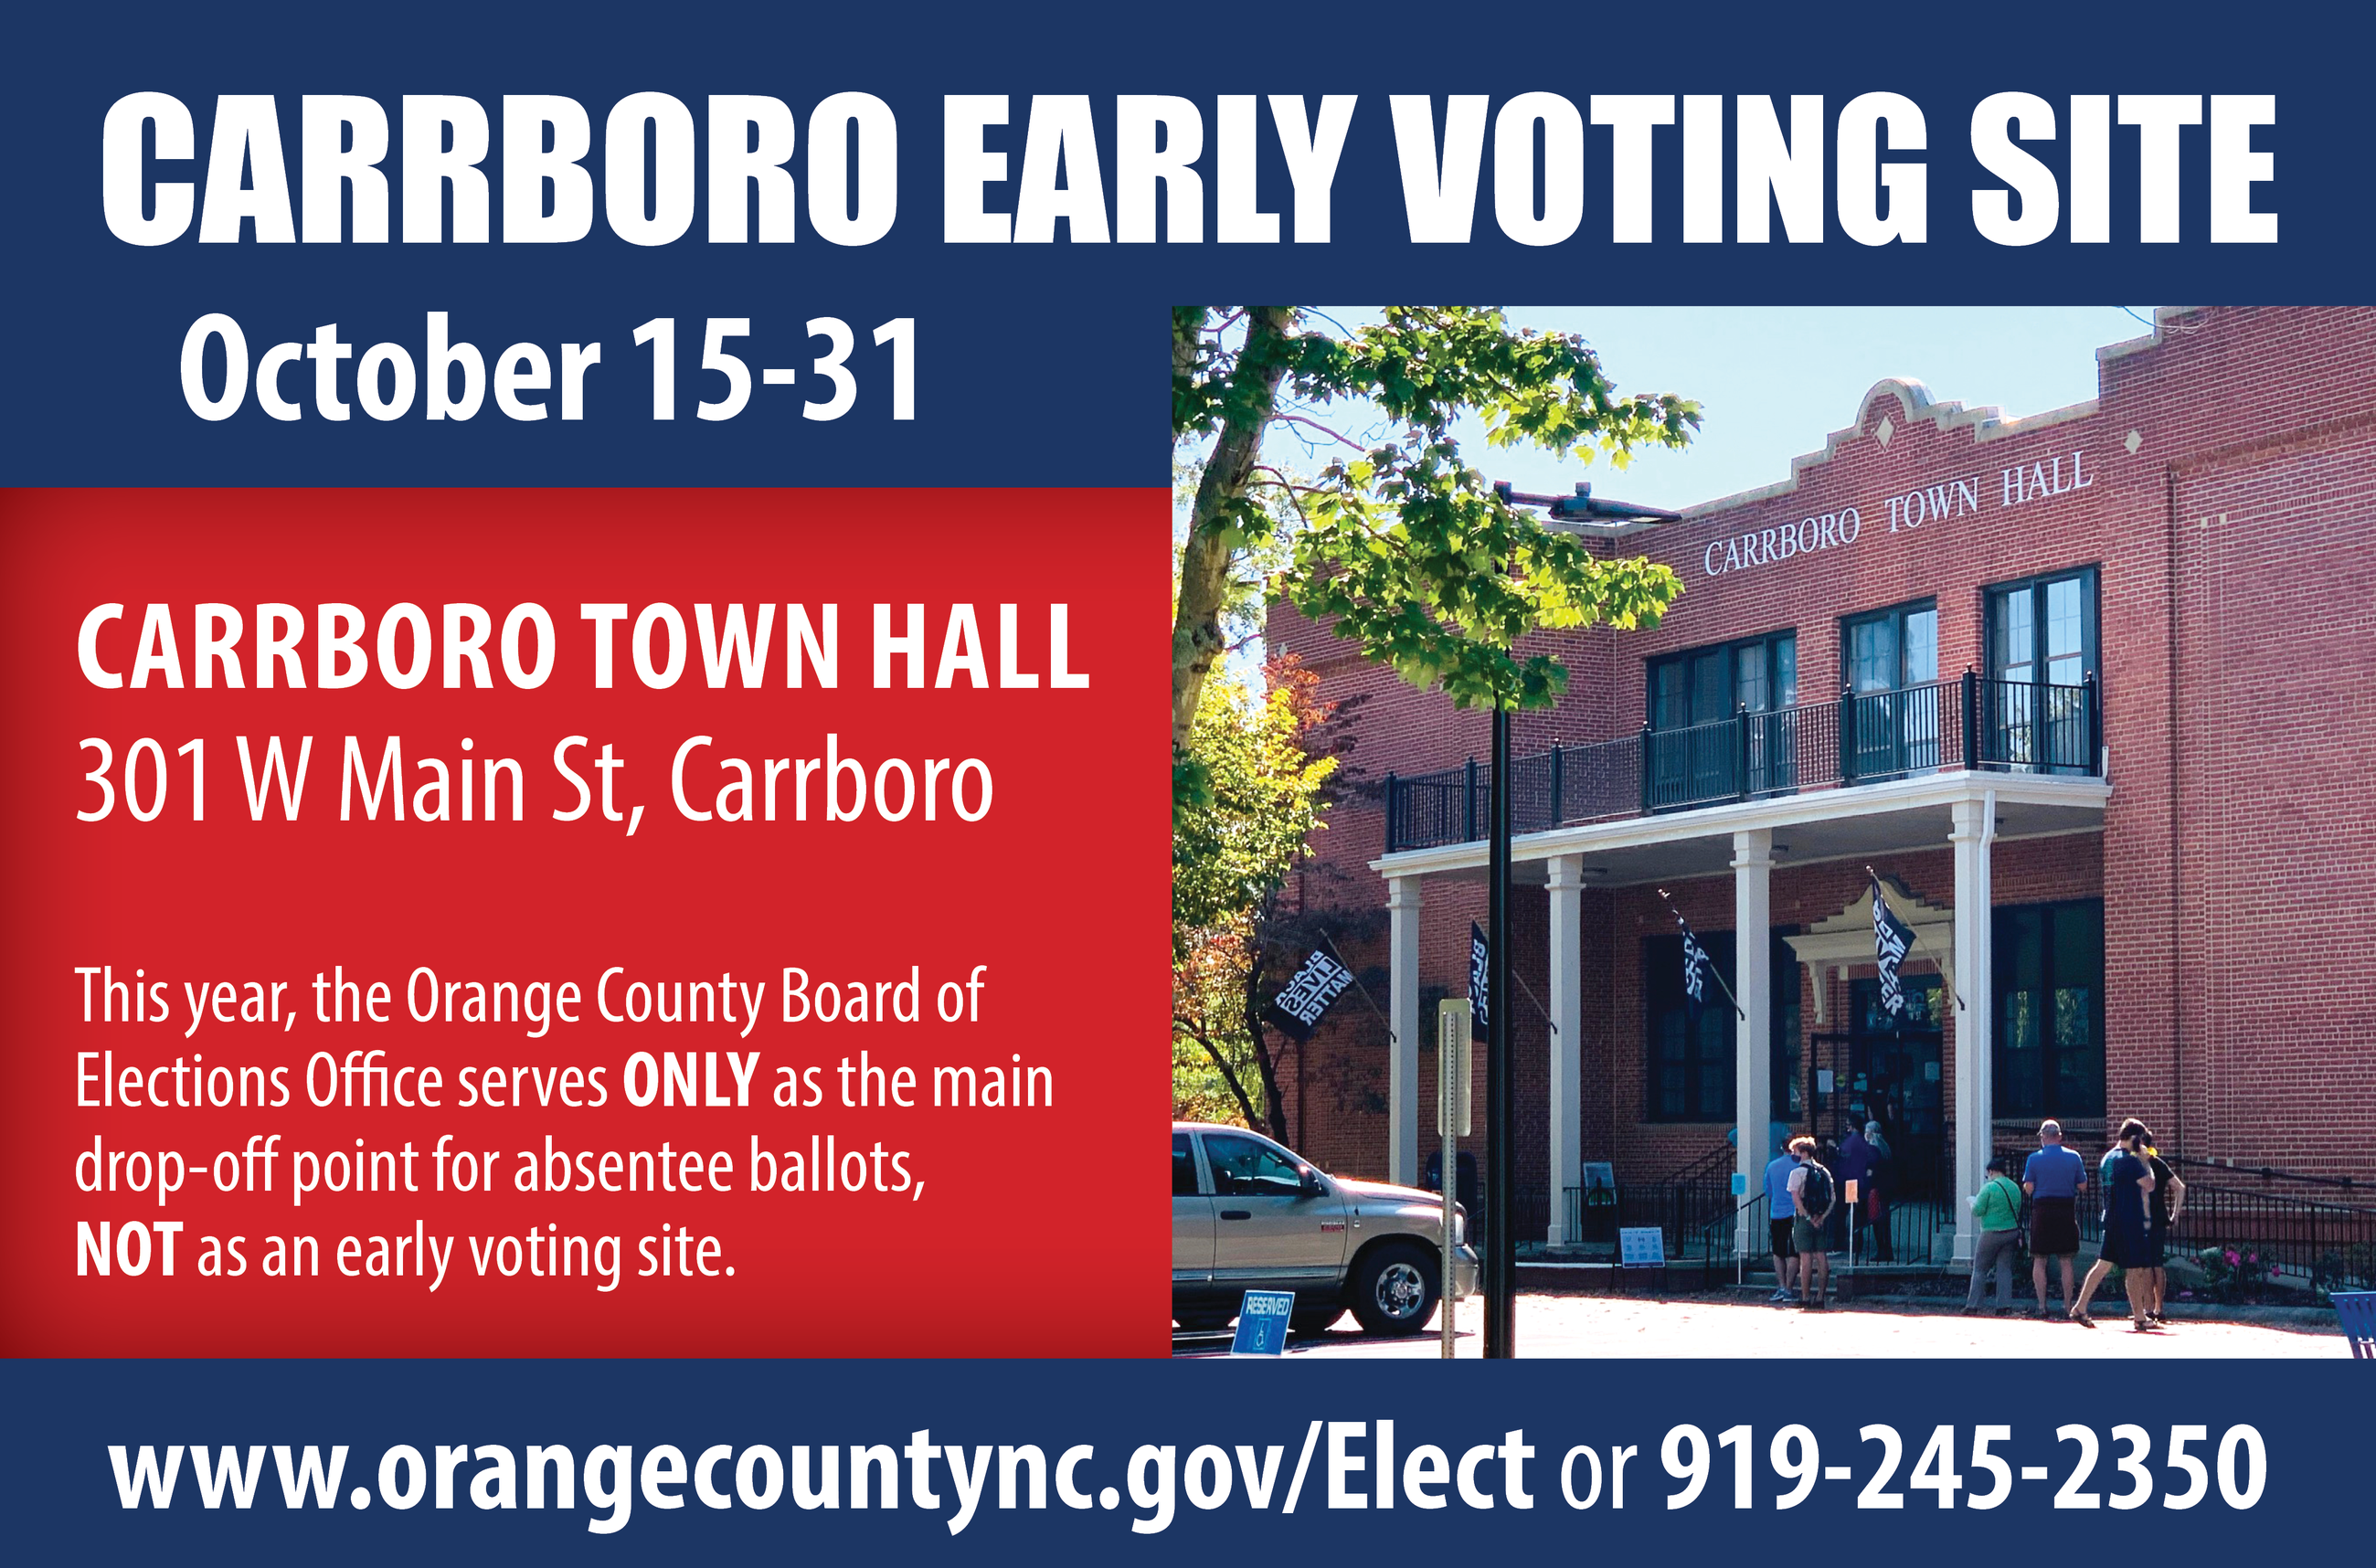 carrboro early voting 2100x1386